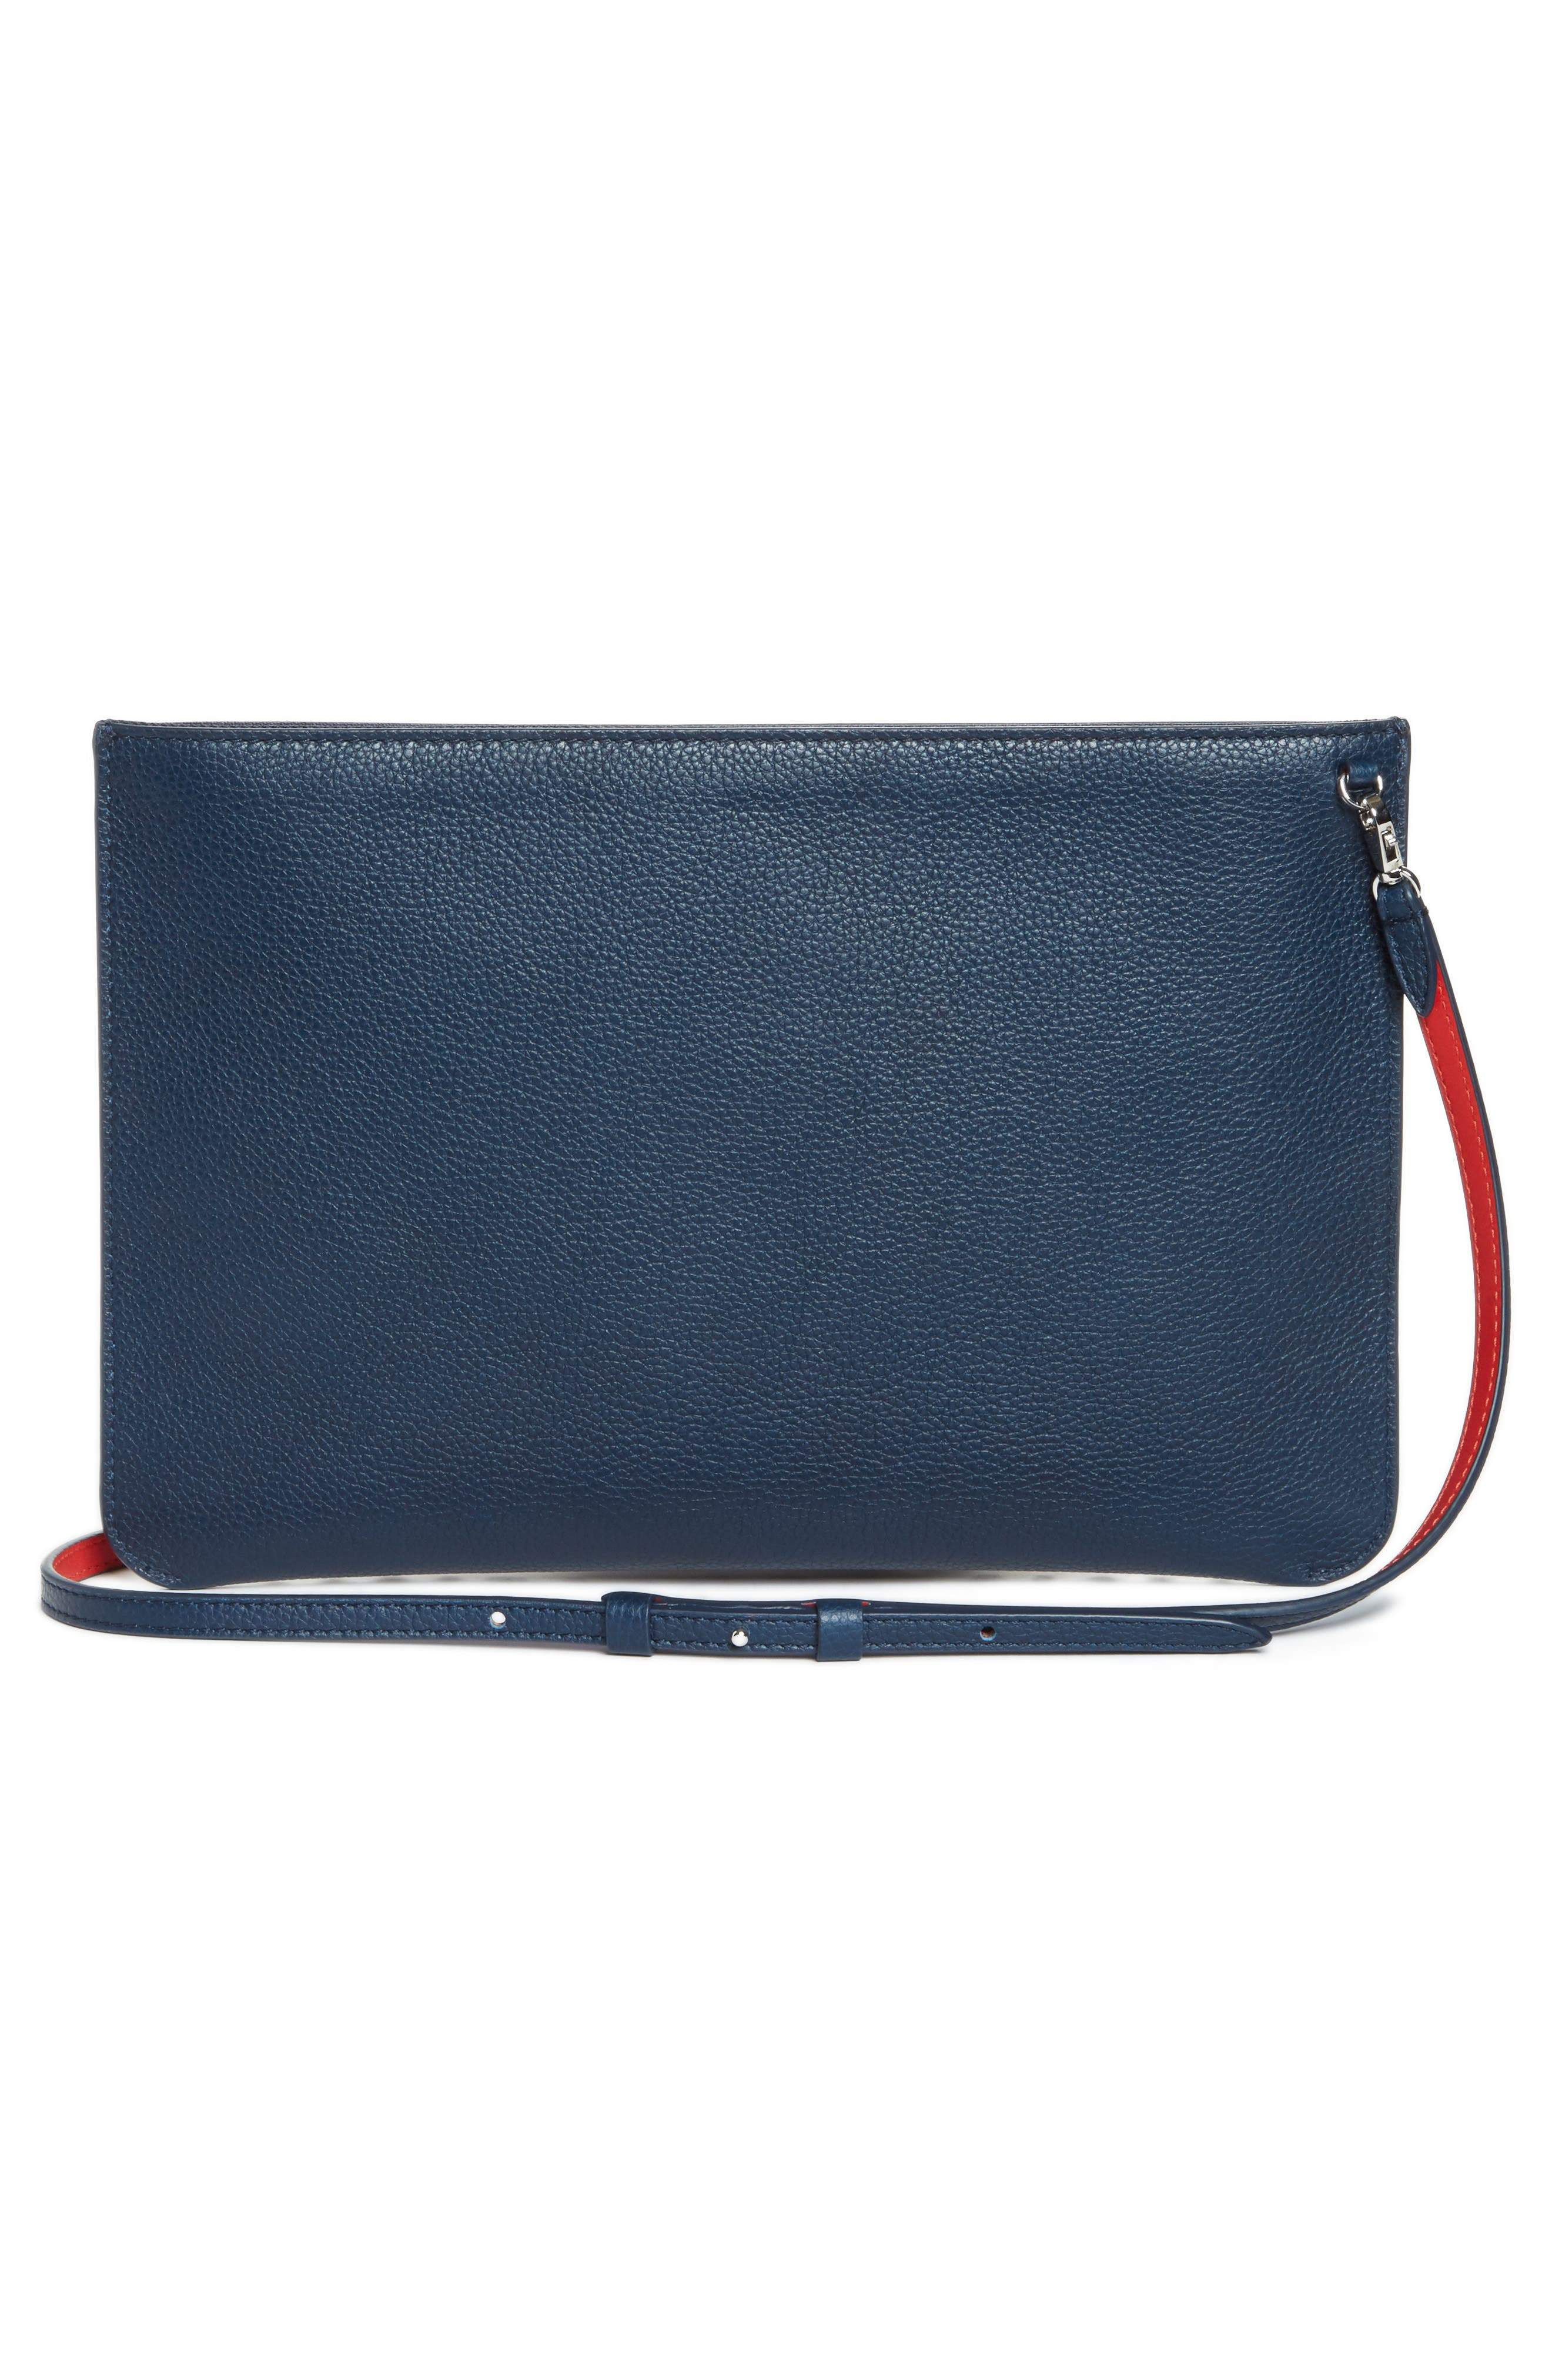 Loubiclutch Spiked Leather Clutch,                             Alternate thumbnail 3, color,                             419